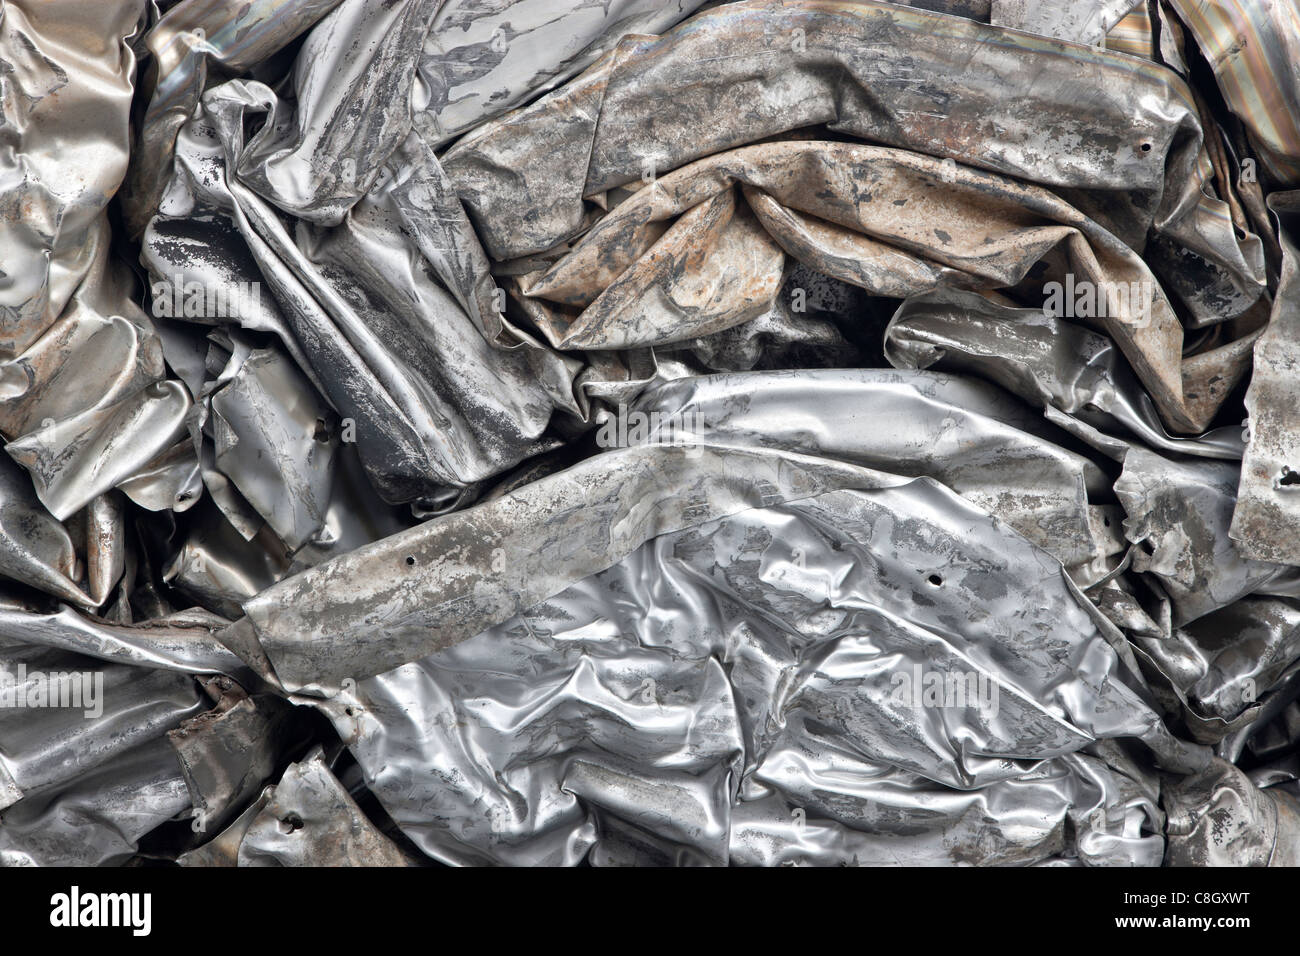 Recycling, compacted stainless steel sheeting, - Stock Image